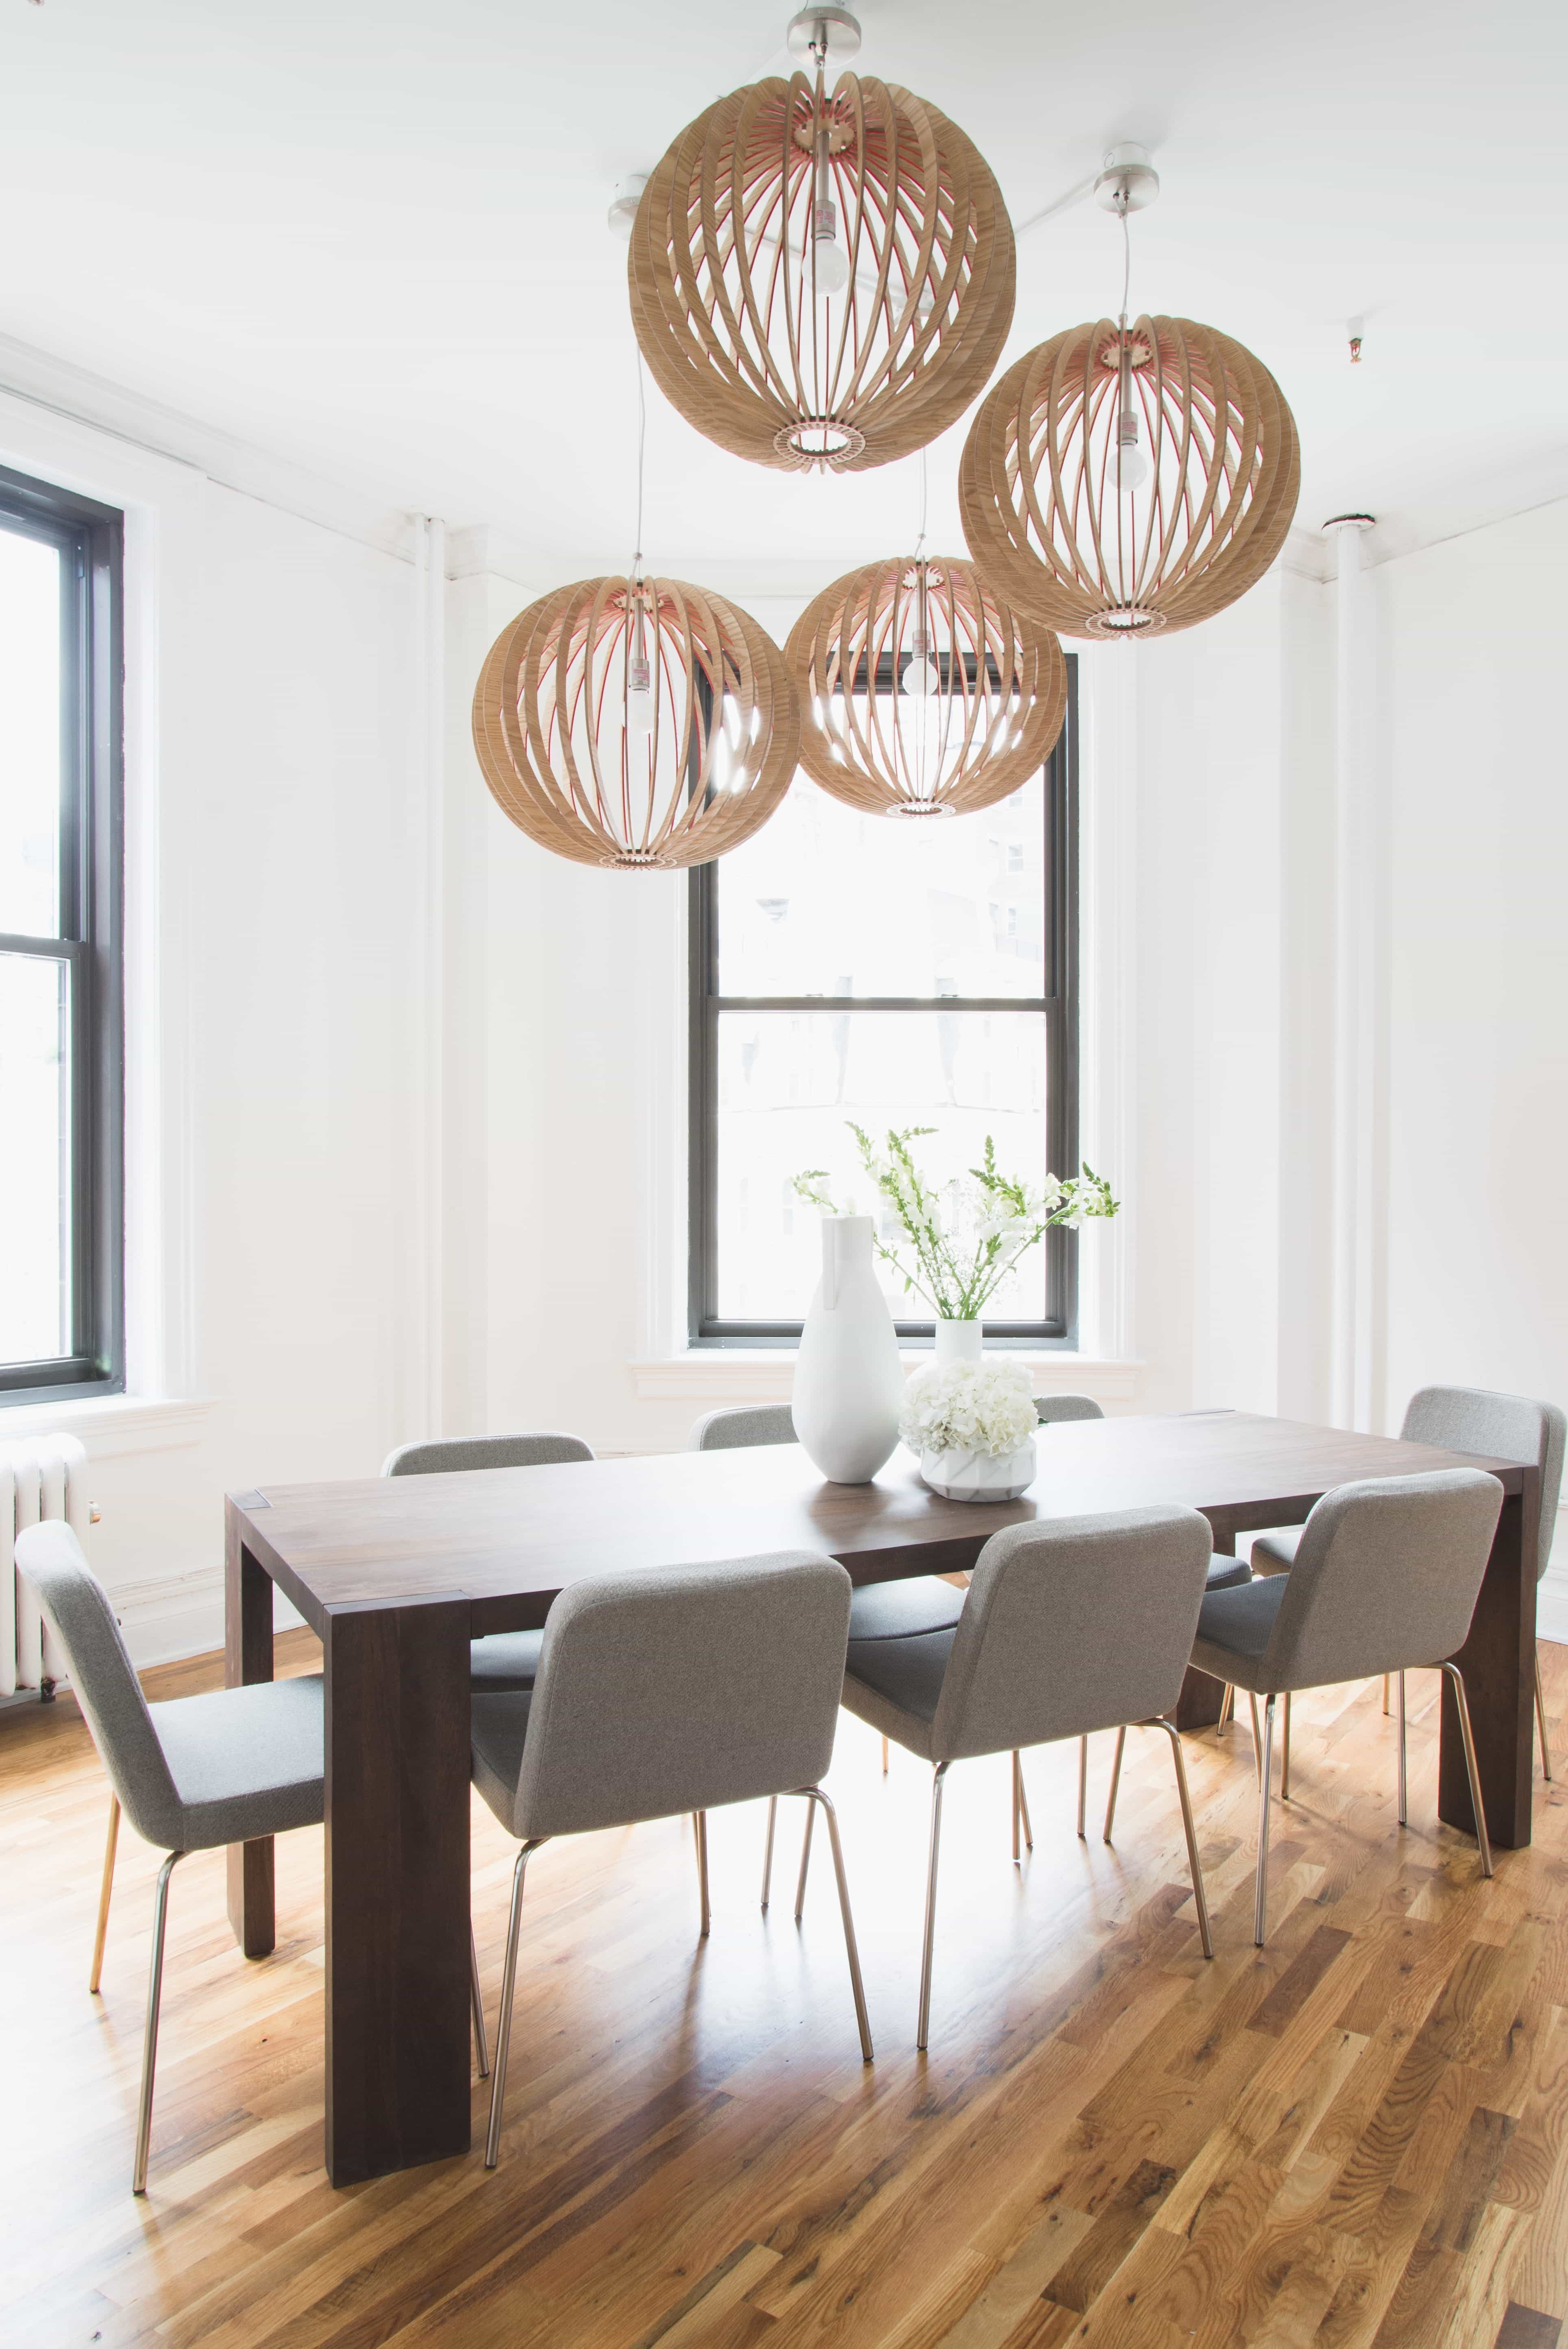 Featured Image of Contemporary White Conference Room With Orb Lights